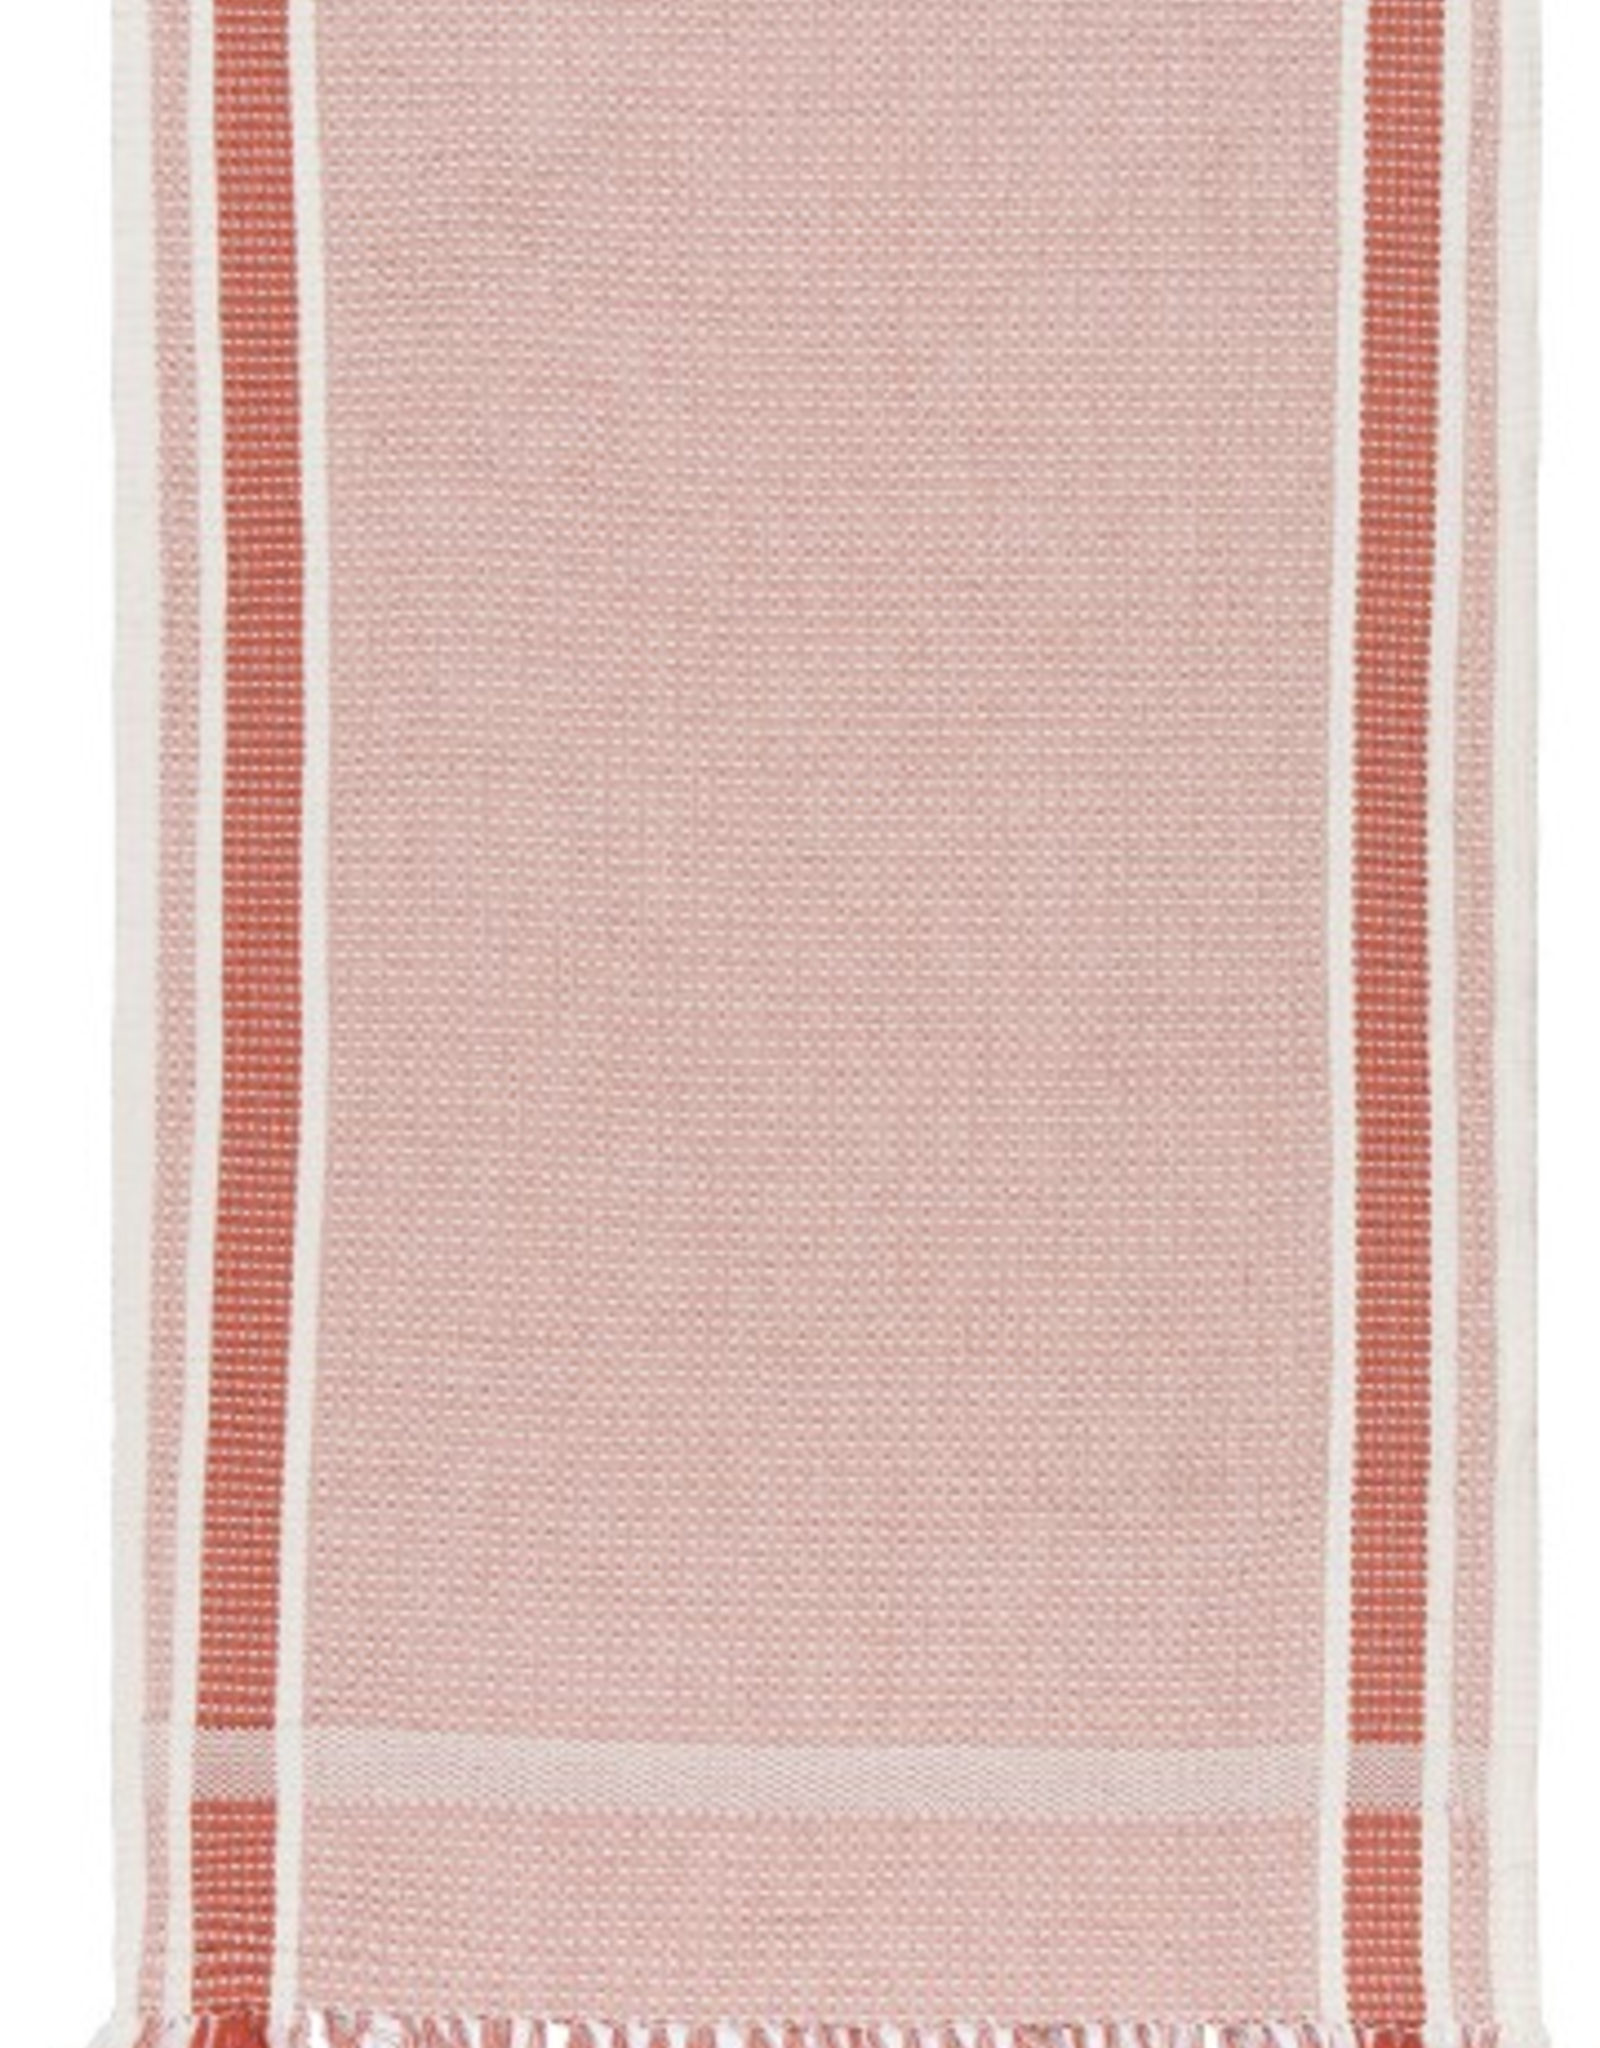 NOW DESIGNS TOWEL DISH 18X28 SOFT WAFFLE WEAVE CLAY RED